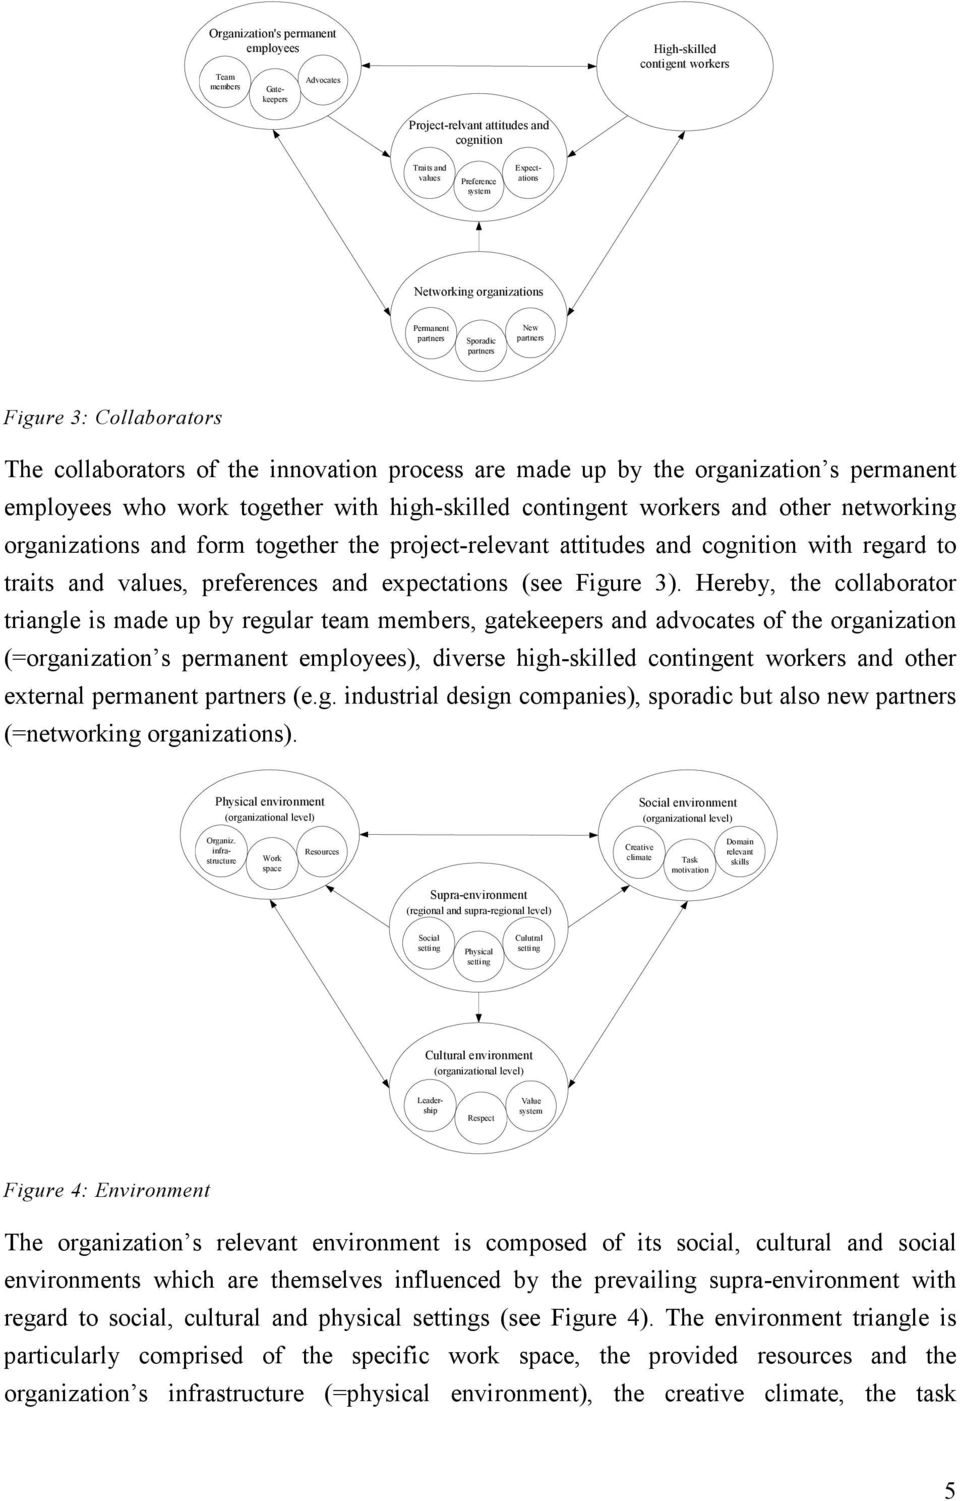 who work together with high-skilled contingent workers and other networking organizations and form together the project-relevant attitudes and cognition with regard to traits and values, preferences